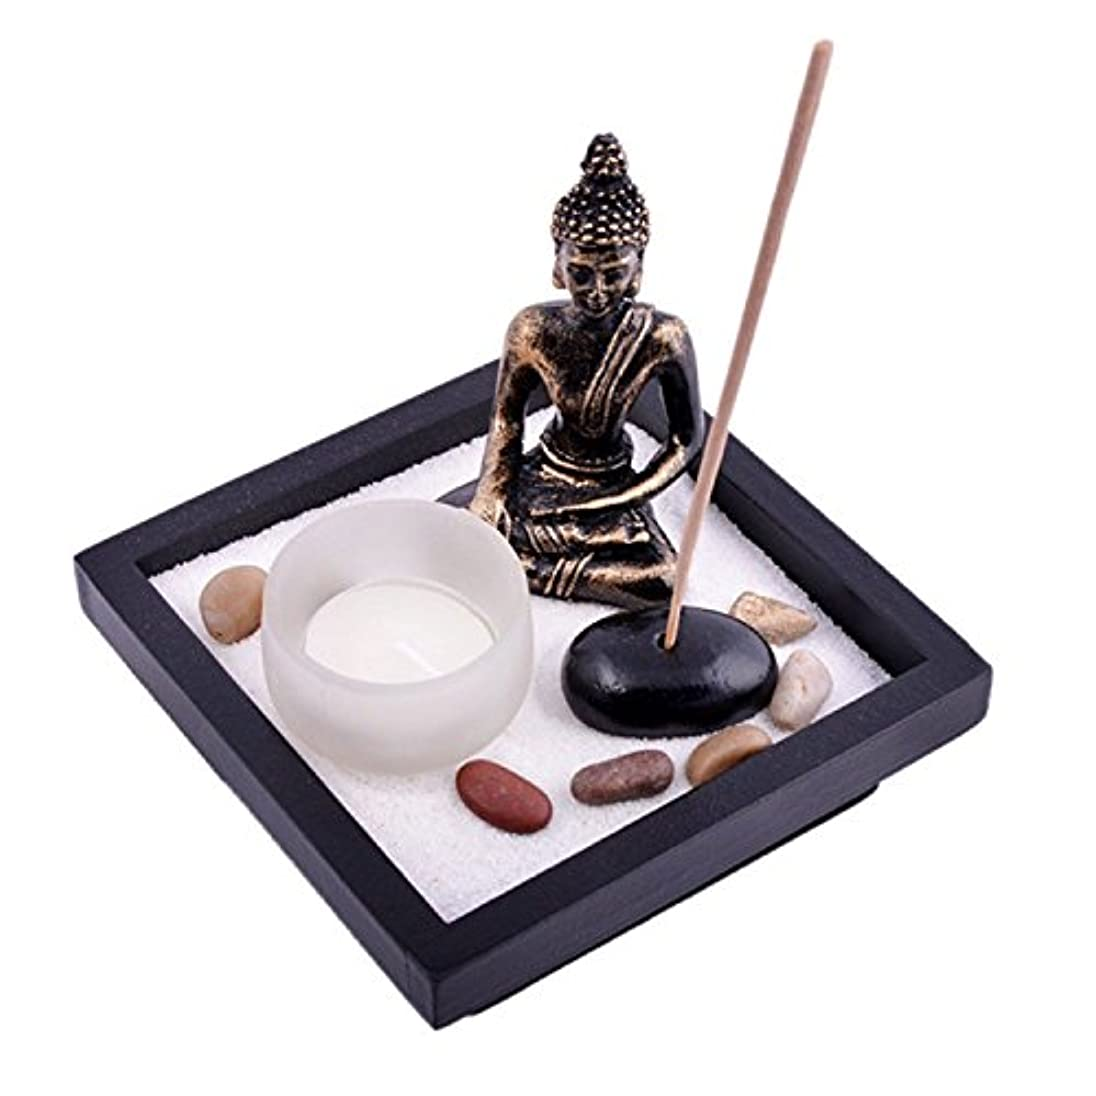 実行する好きである報いるThy Collectibles Asian Japanese Feng Shui砂Zen Garden Buddha Tealight & Incense Holder yd50